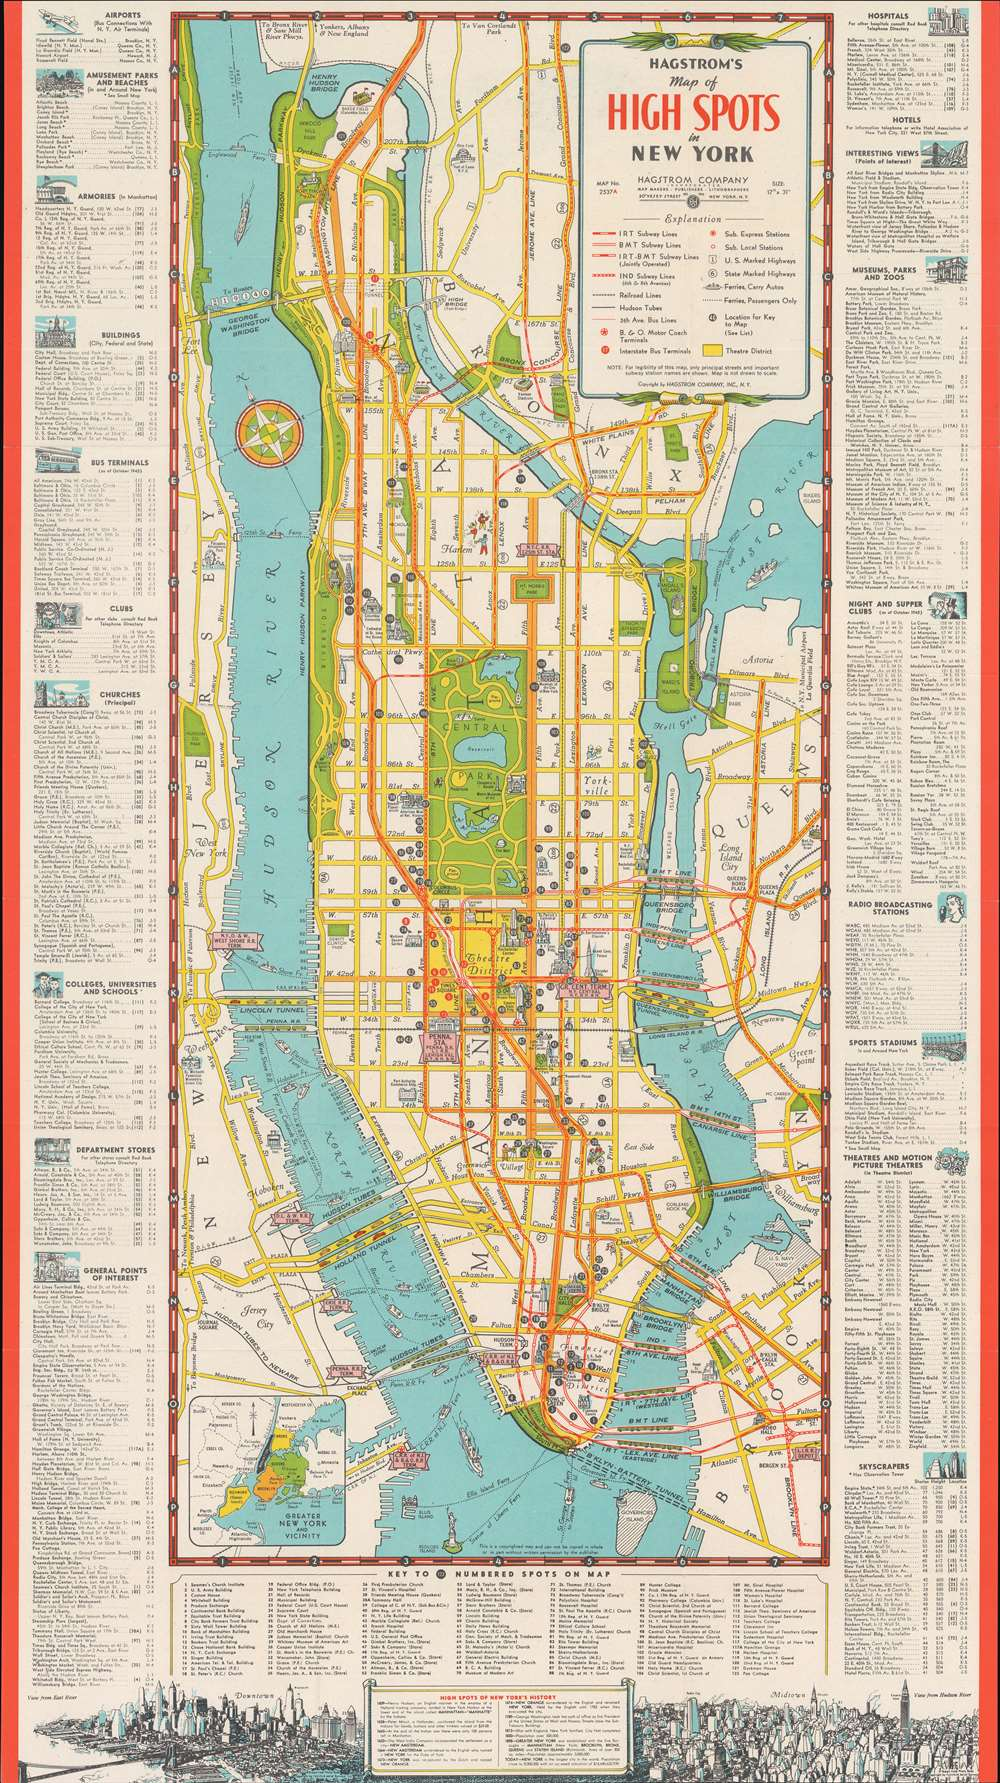 1945 Hagstrom Map of New York City and its Tourist Attractions